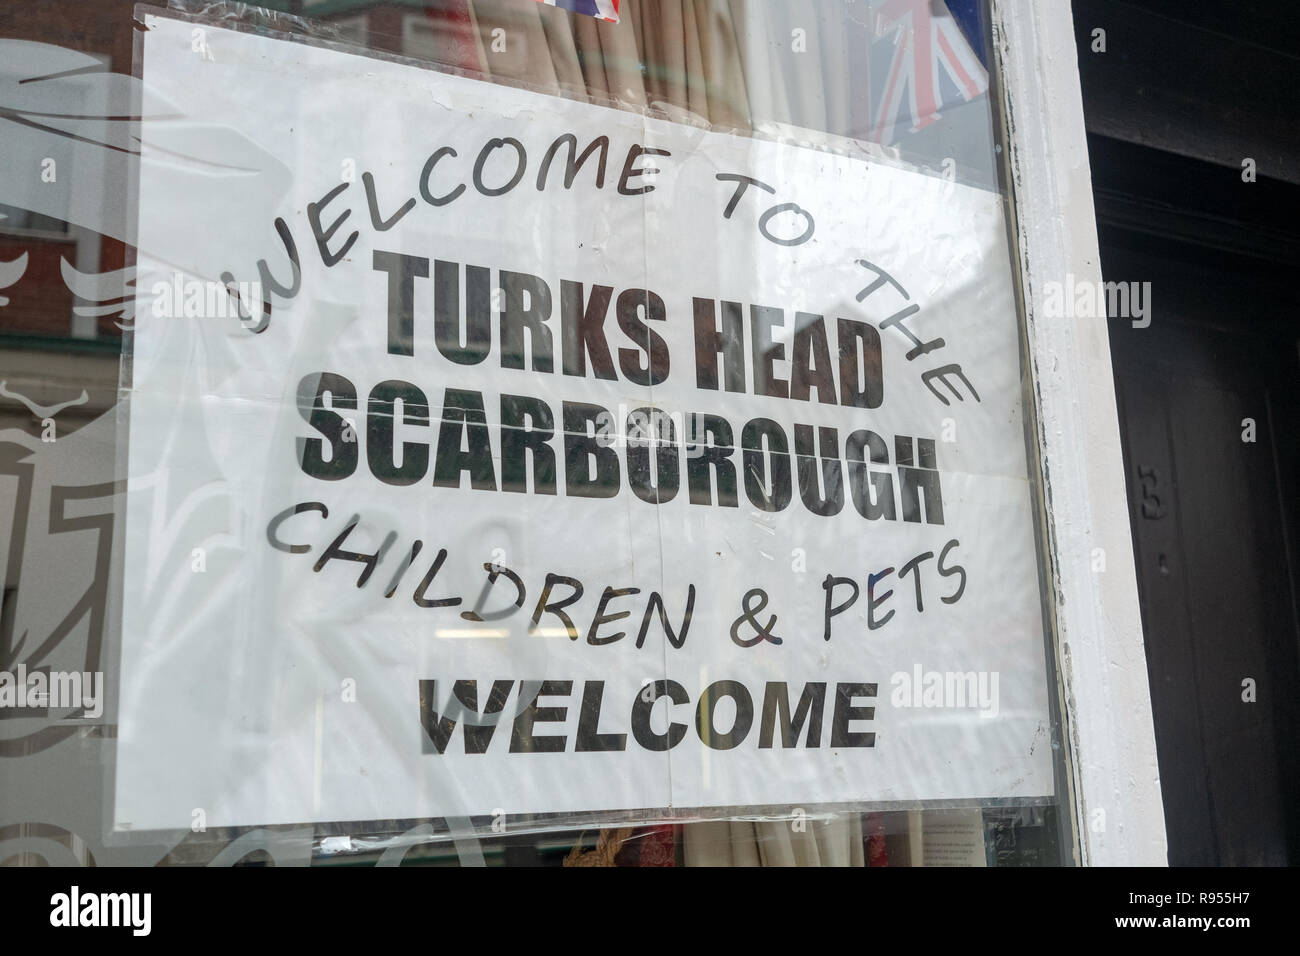 Pub window with sign advertising pets & children welcome - Stock Image